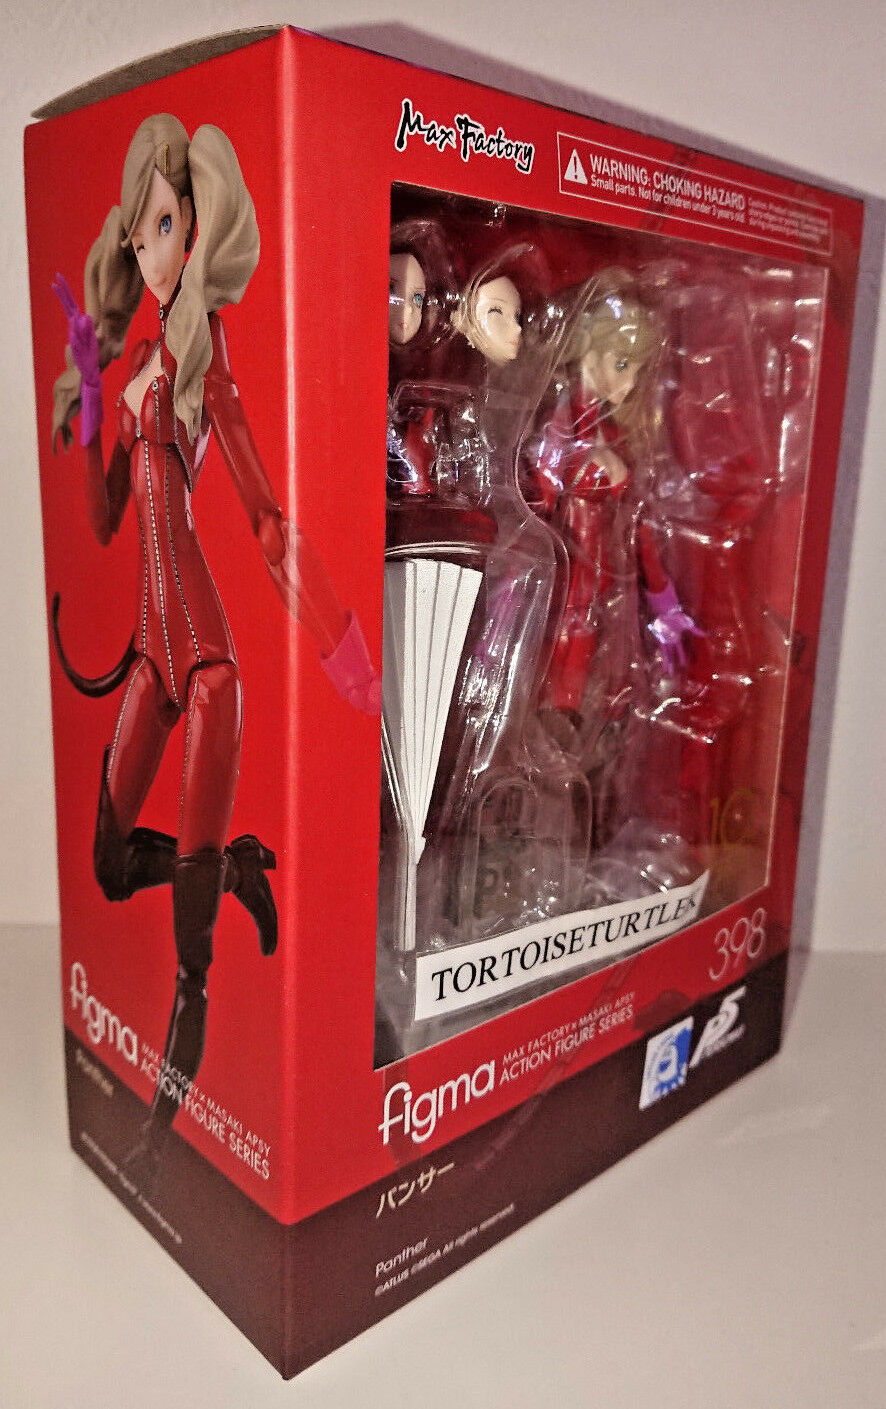 Max fabrik figma persona 5 panther action - figur